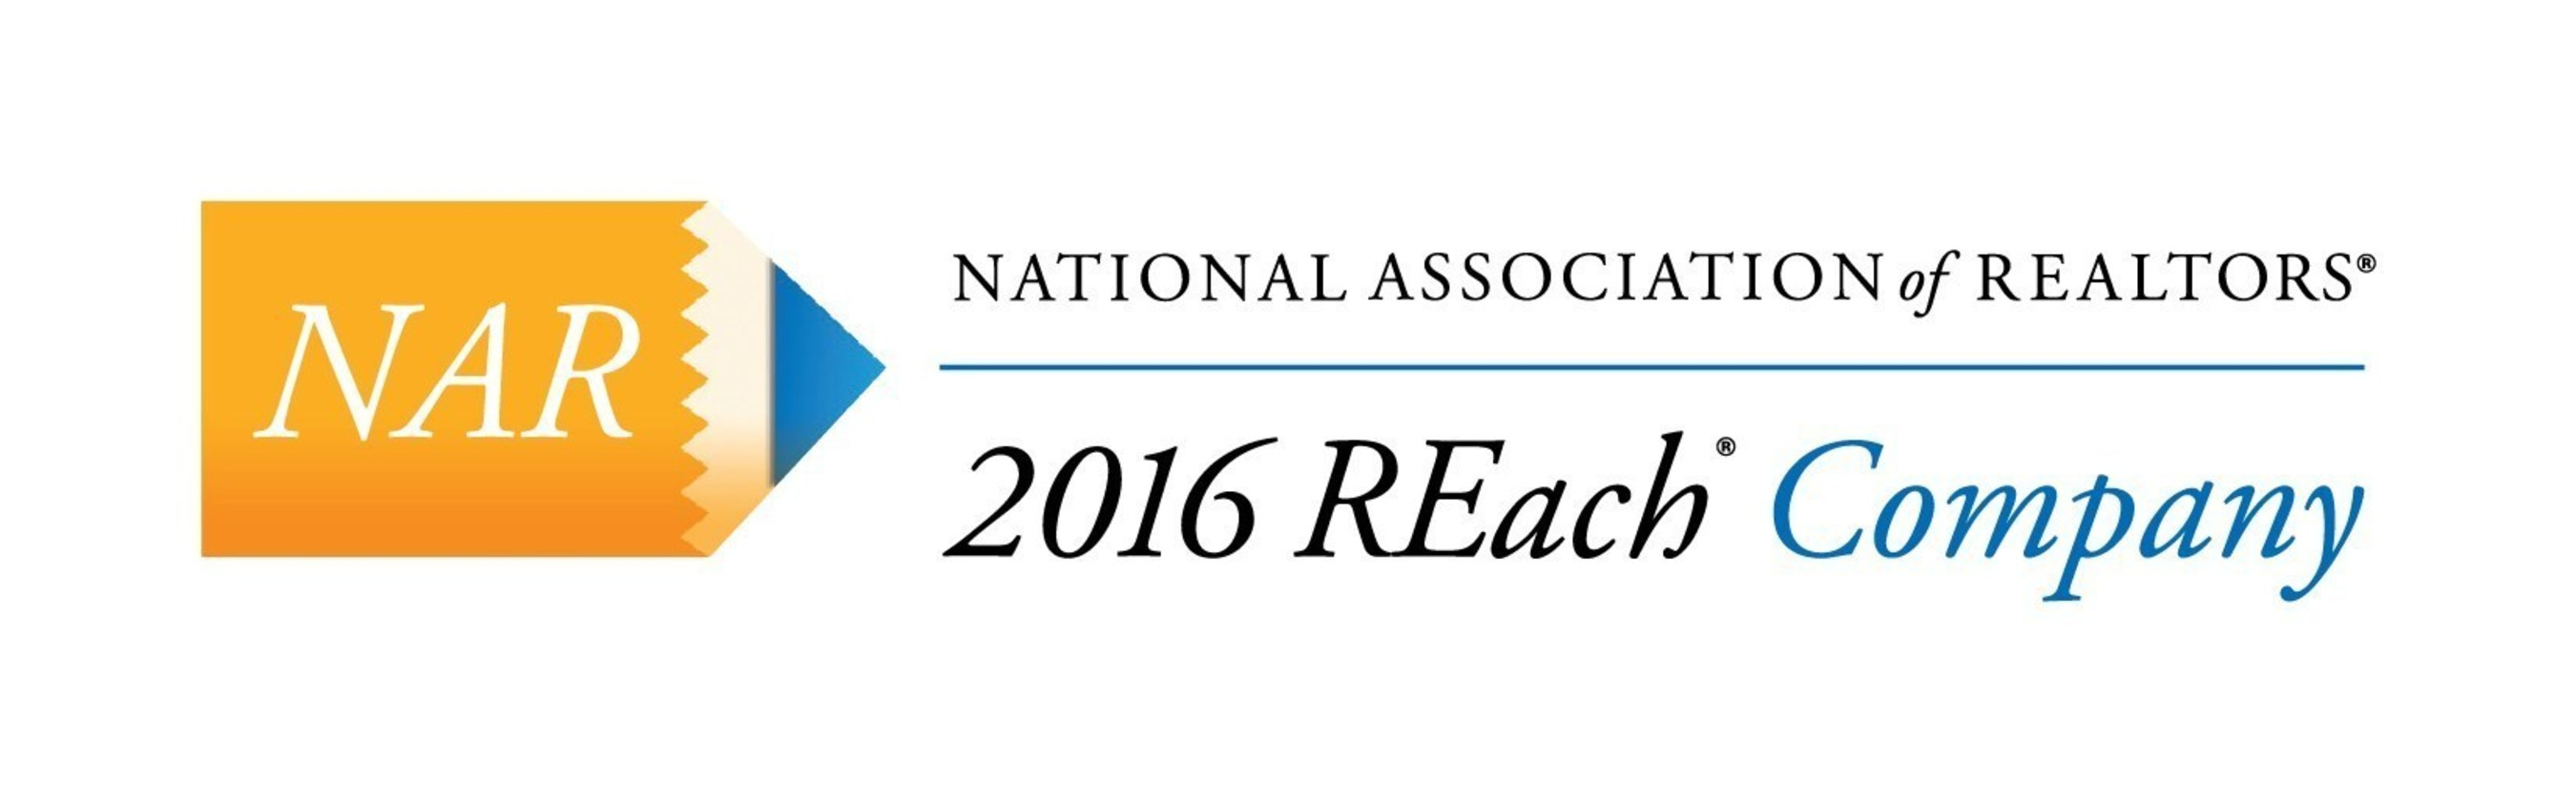 """REach(R) provides unparalleled access to the best minds in the business. NAR is """"The Voice for Real Estate."""" With over 1 million members, it is the nation's largest trade association.  It is the authoritative resource for economic industry data and reaches millions of constituents, including consumers, banks, insurance and, of course, REALTORS(R) every single day."""